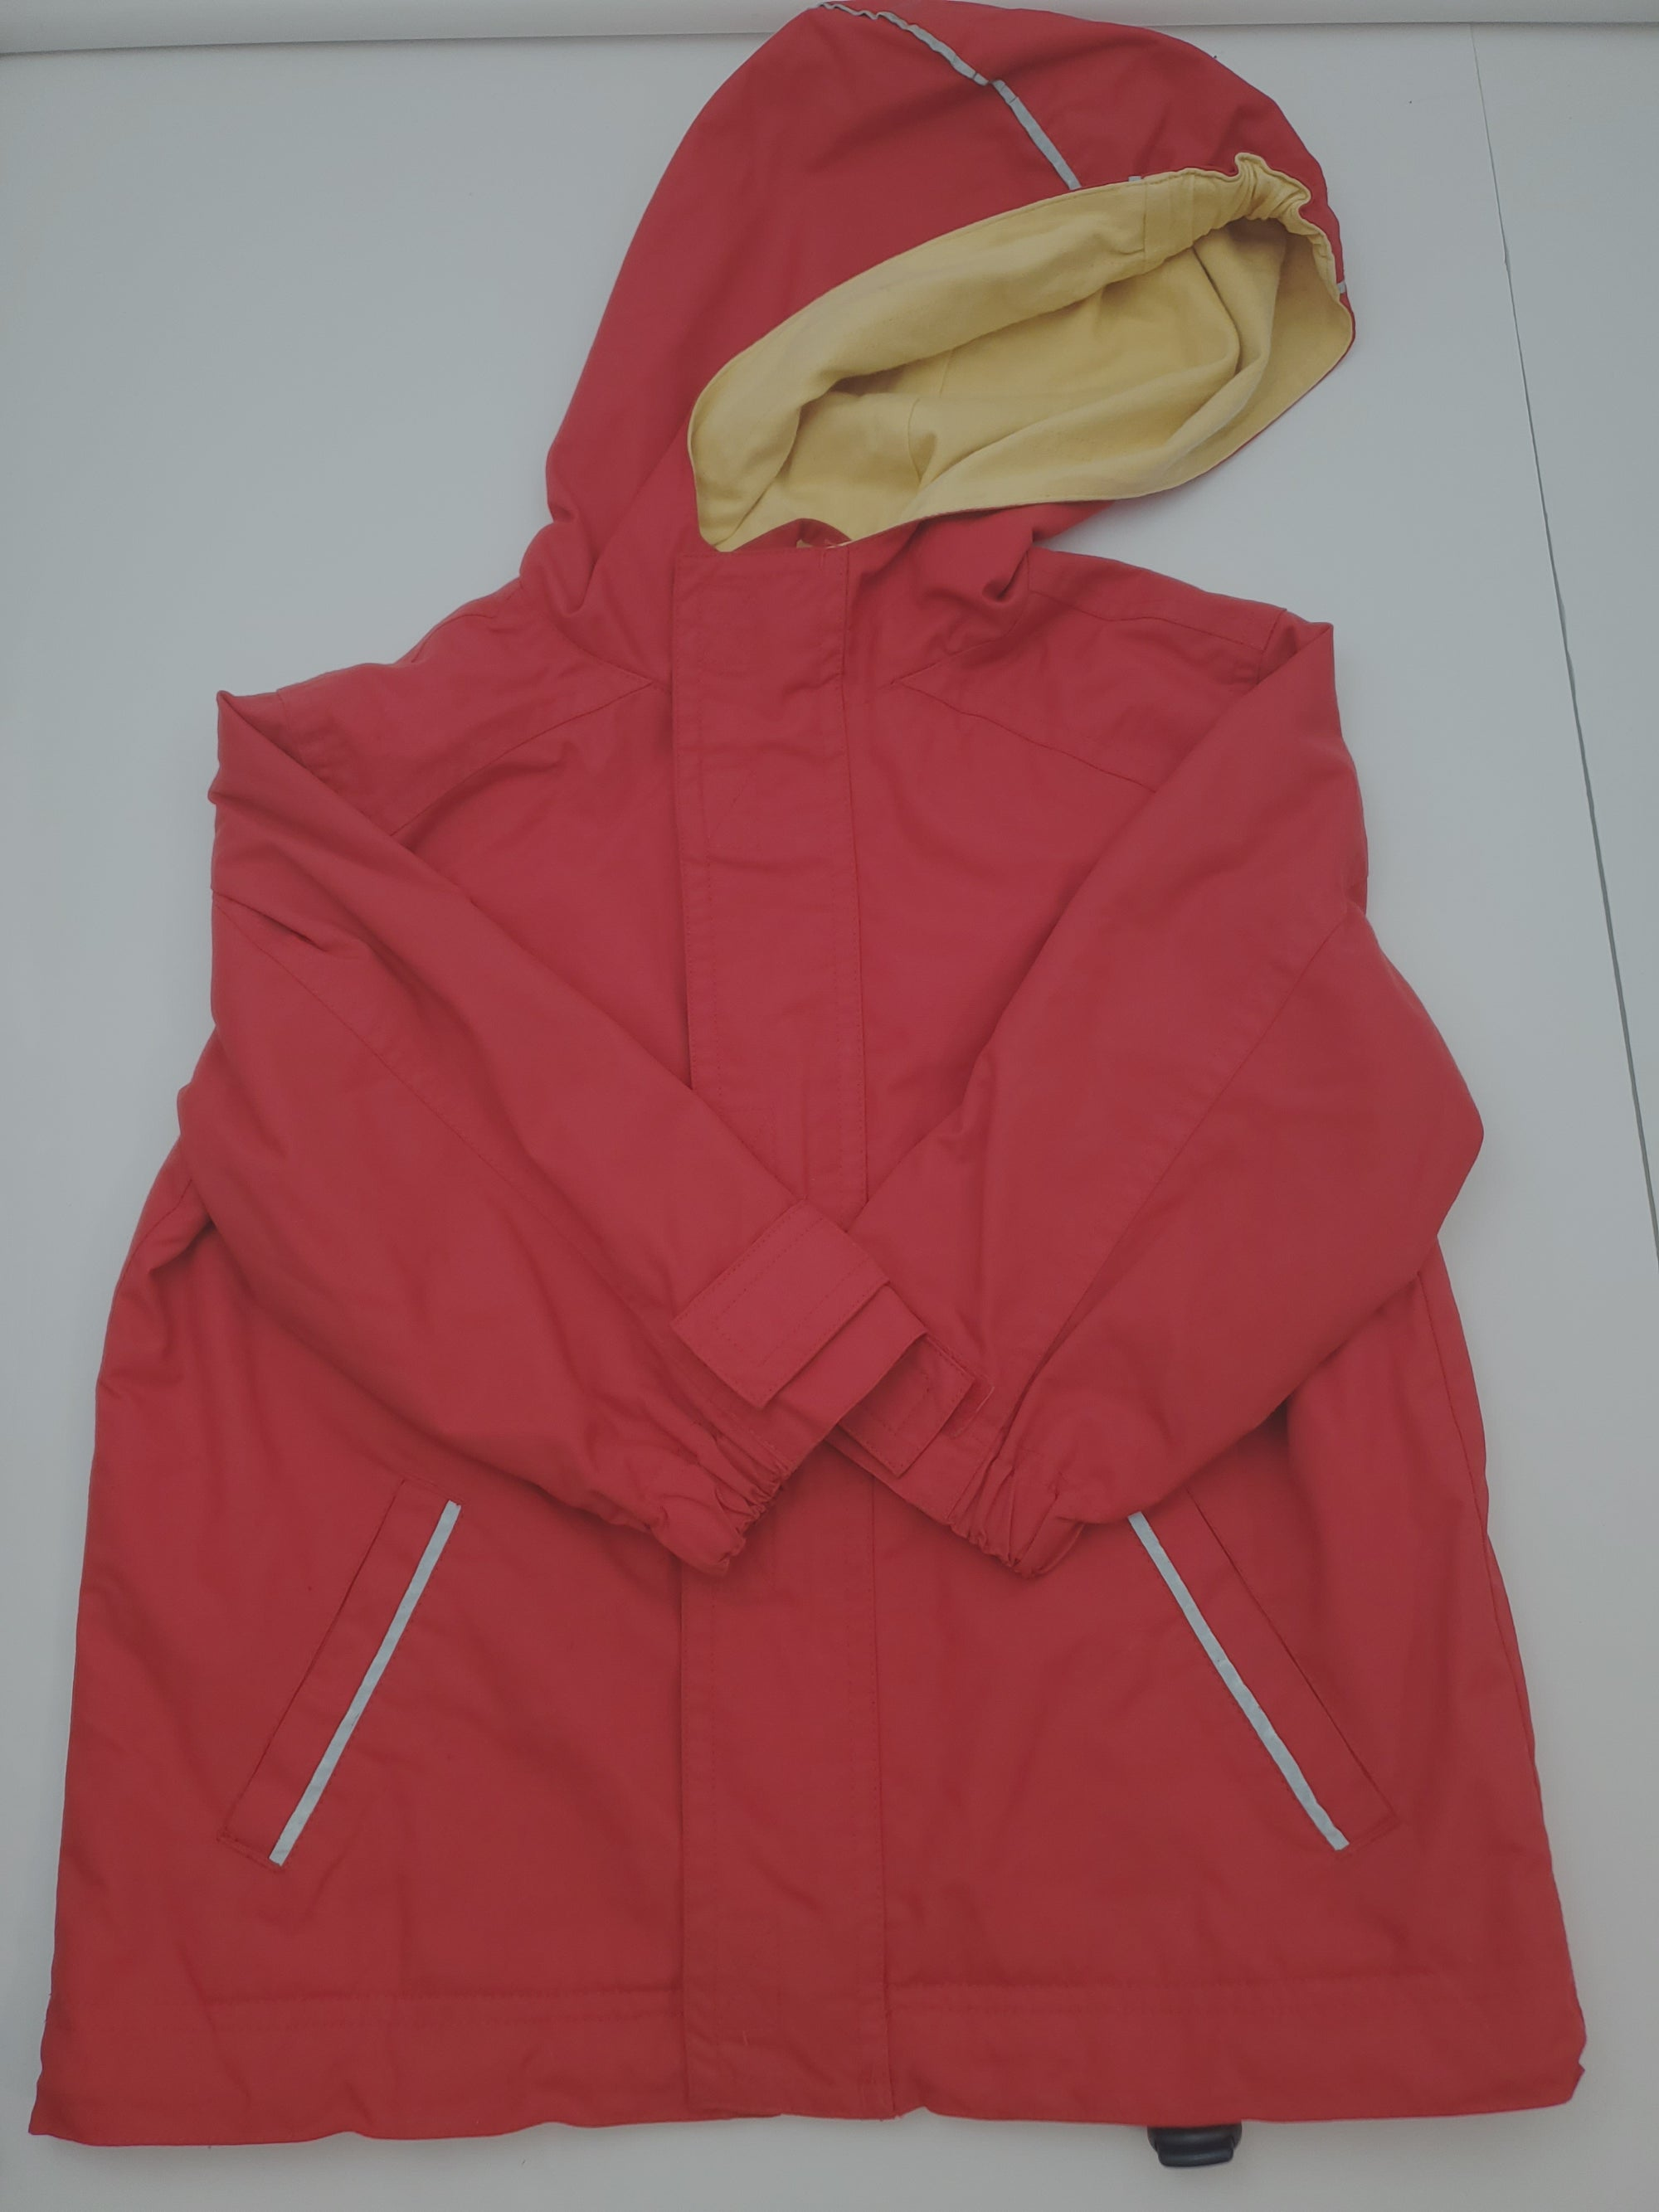 Resale 90 (18-24m) Hanna Andersson Red Hooded Jacket